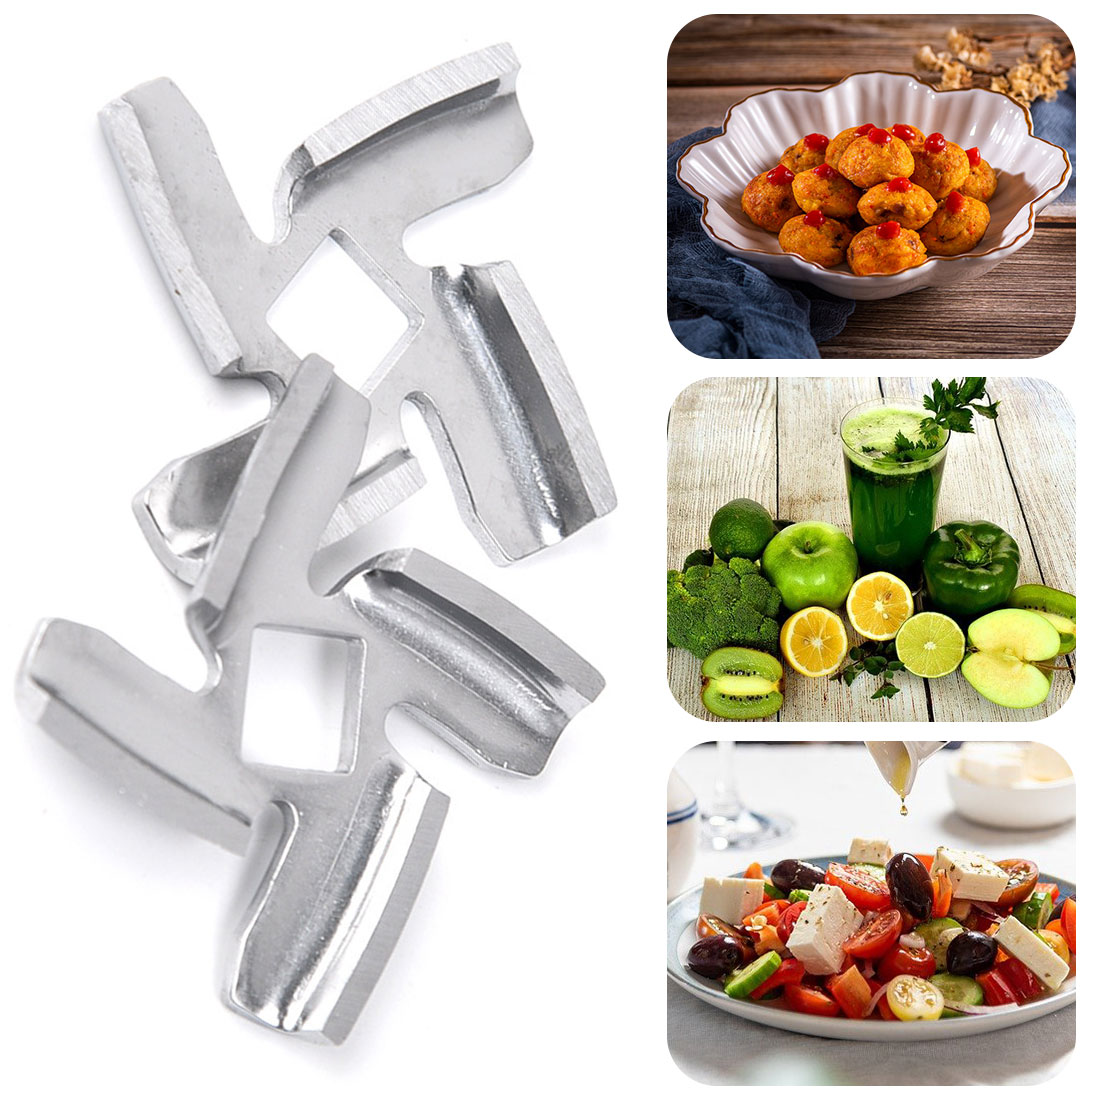 1pc 50mm diameter stainless steel meat grinder blade for Mullins HV6 type 133 household kitchen tool accessories